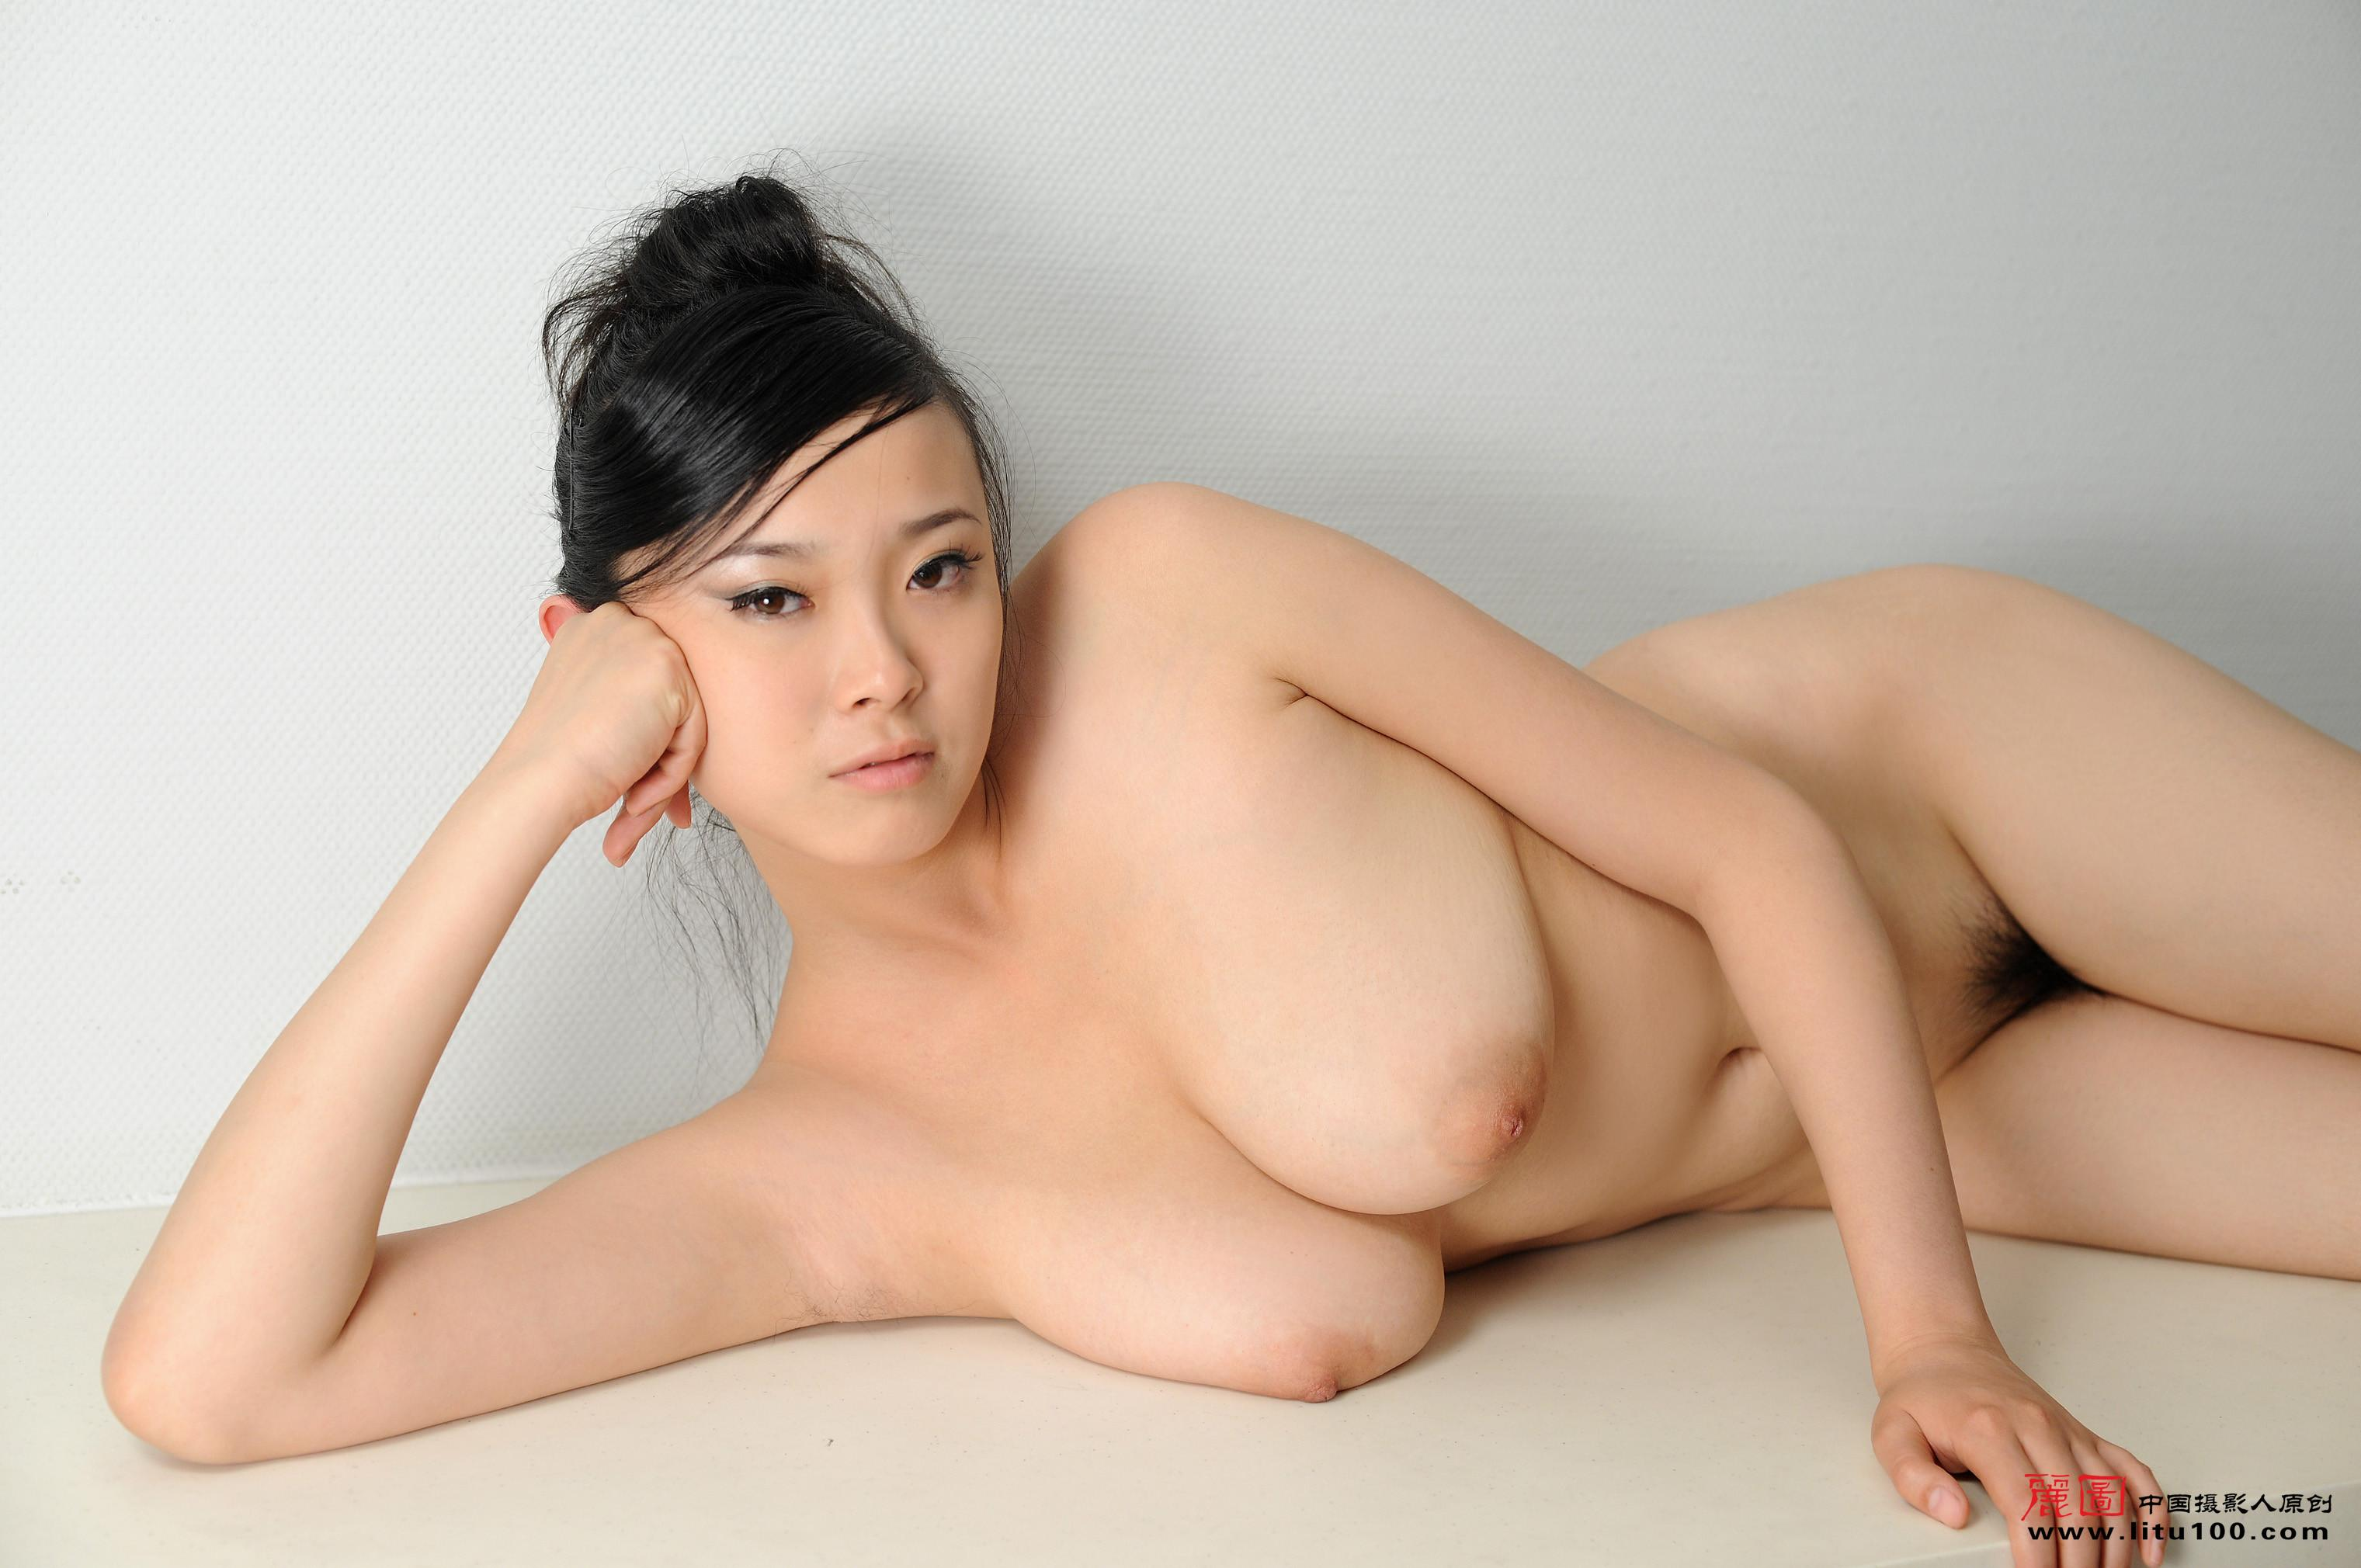 Chinese nude naked girls